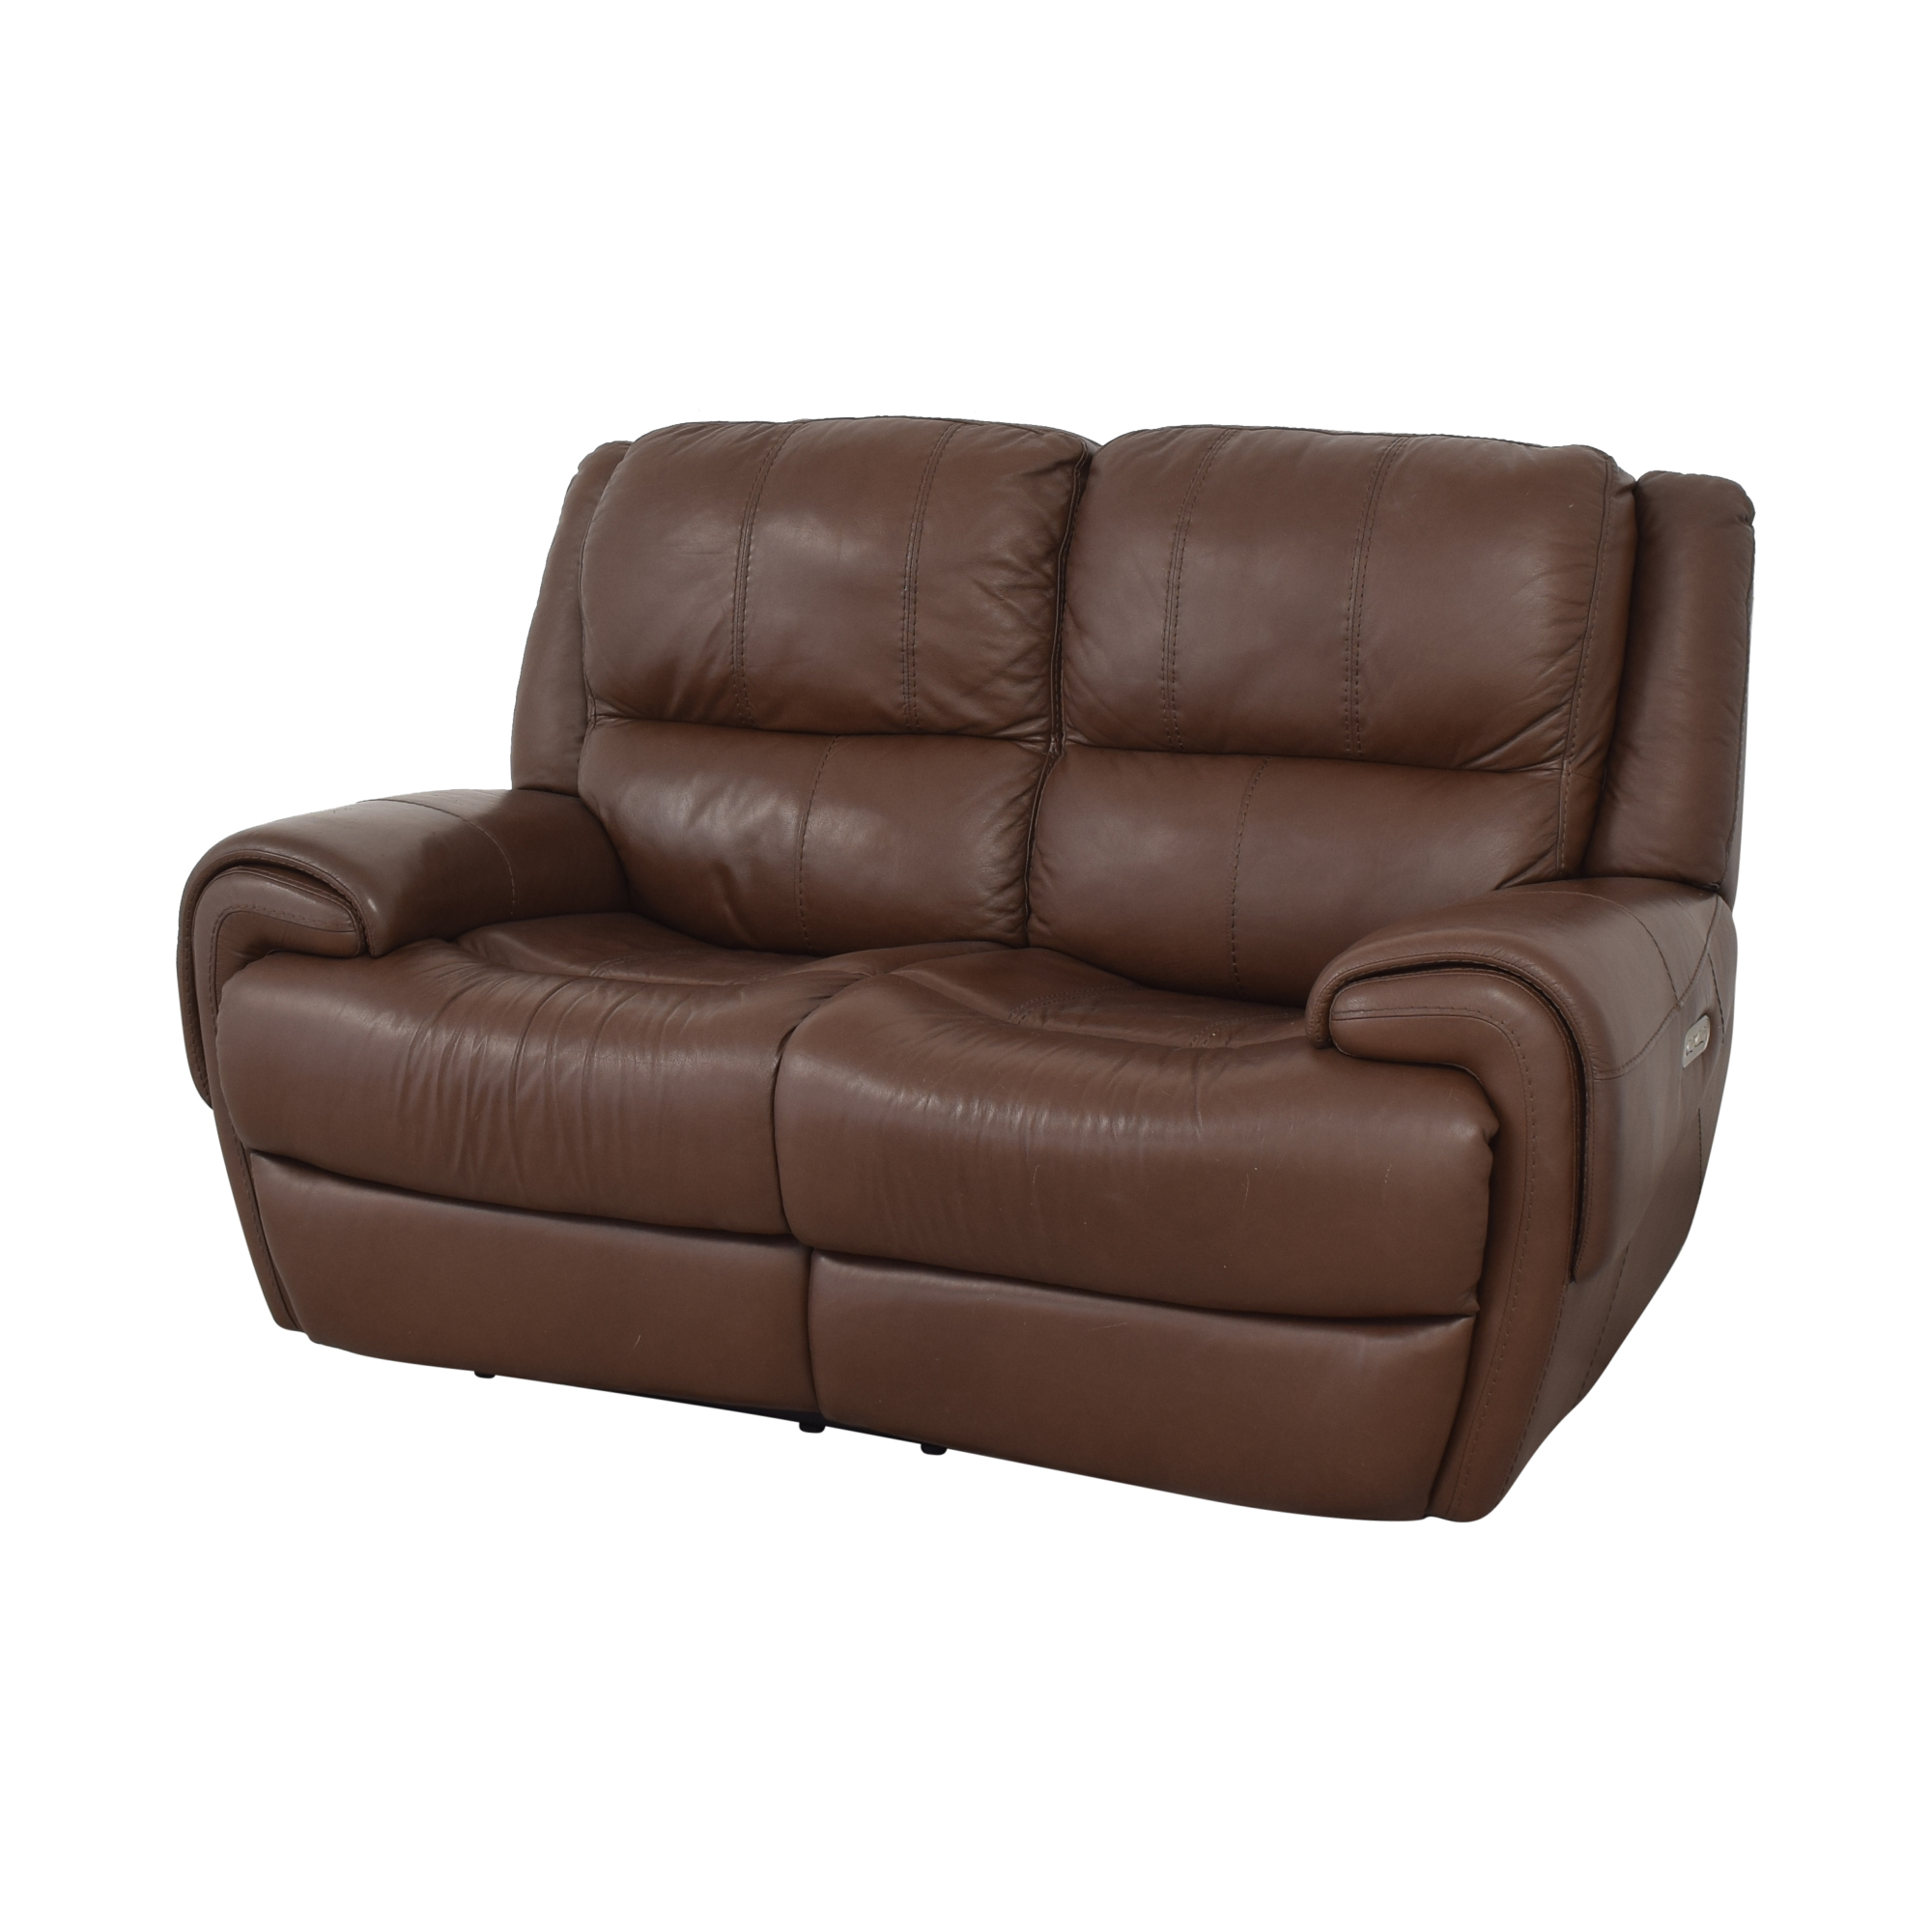 shop Raymour & Flanigan Colvin Power-Reclining Loveseat Raymour & Flanigan